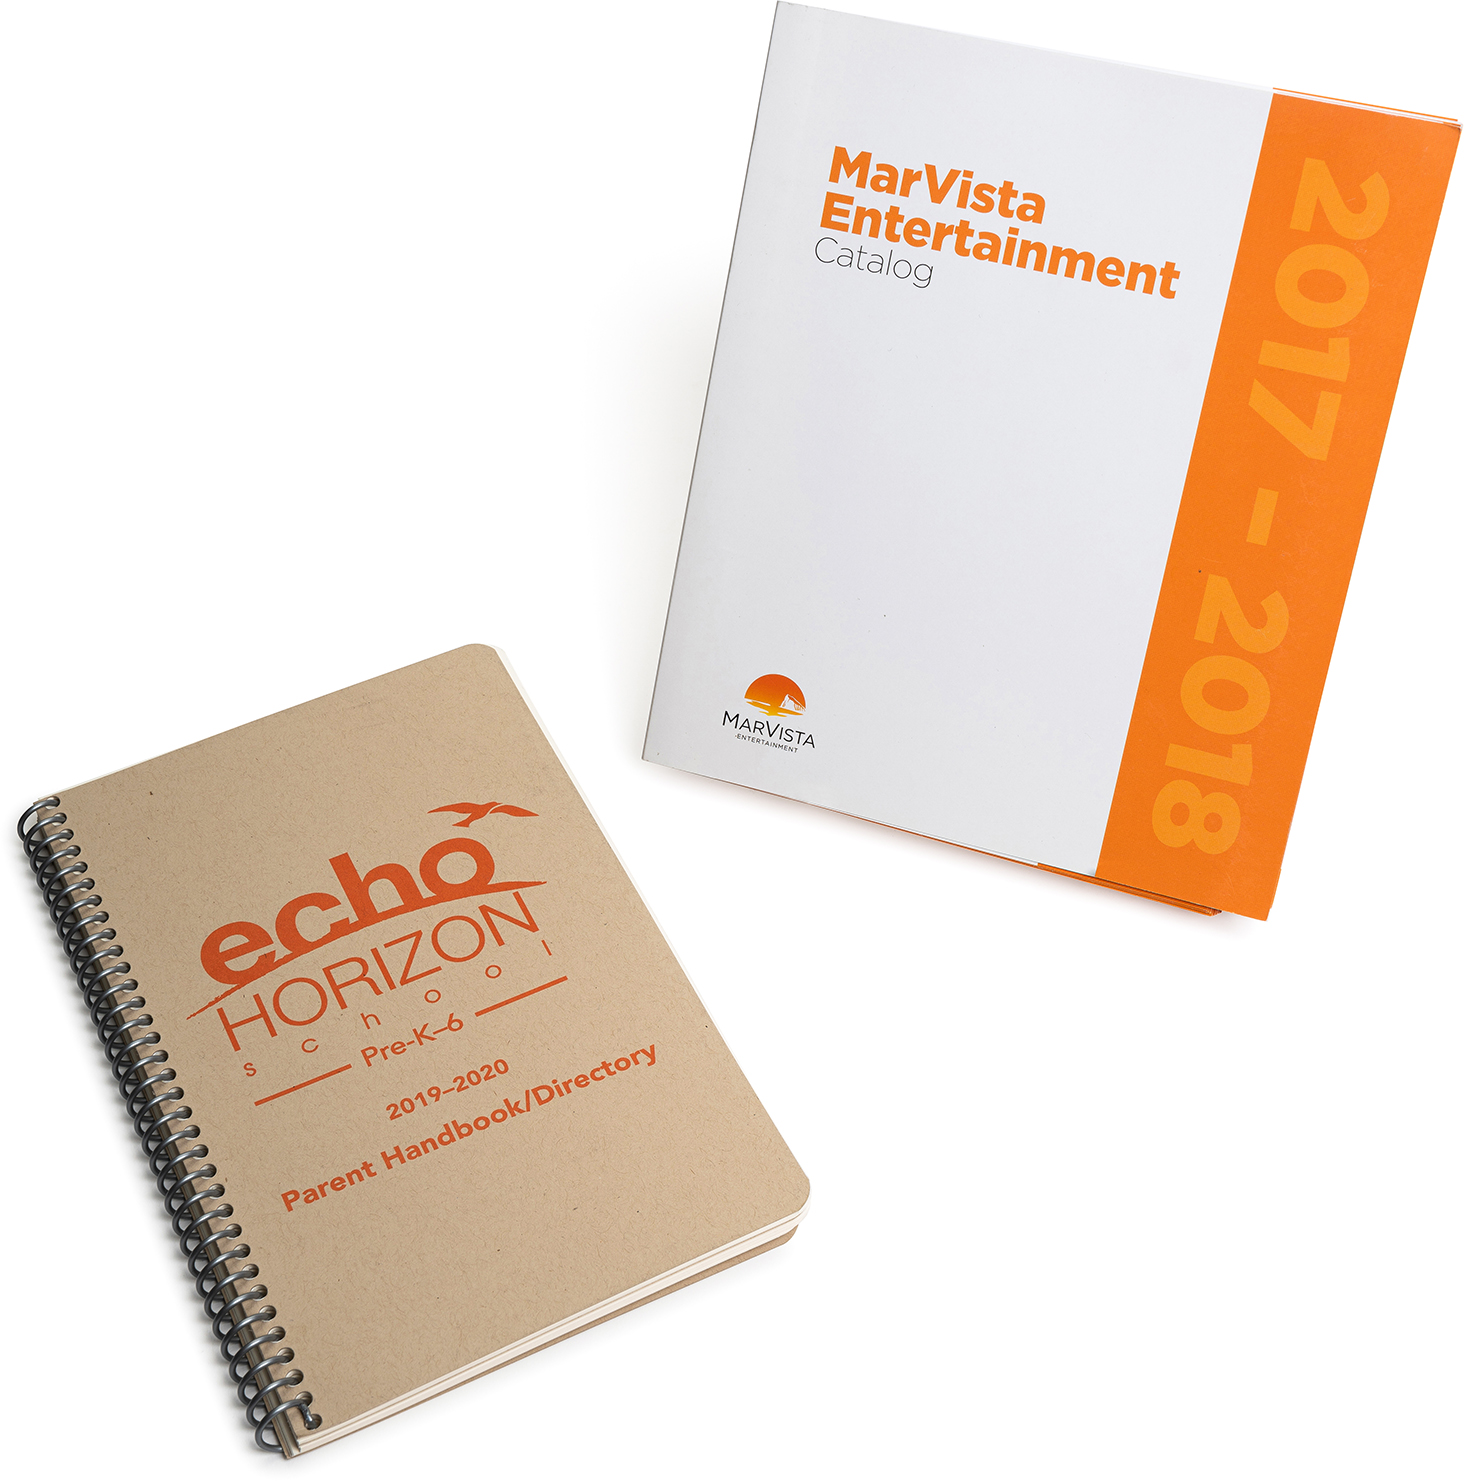 Educational institutions spiral bind, saddle stitch, handbook, catalog, digital